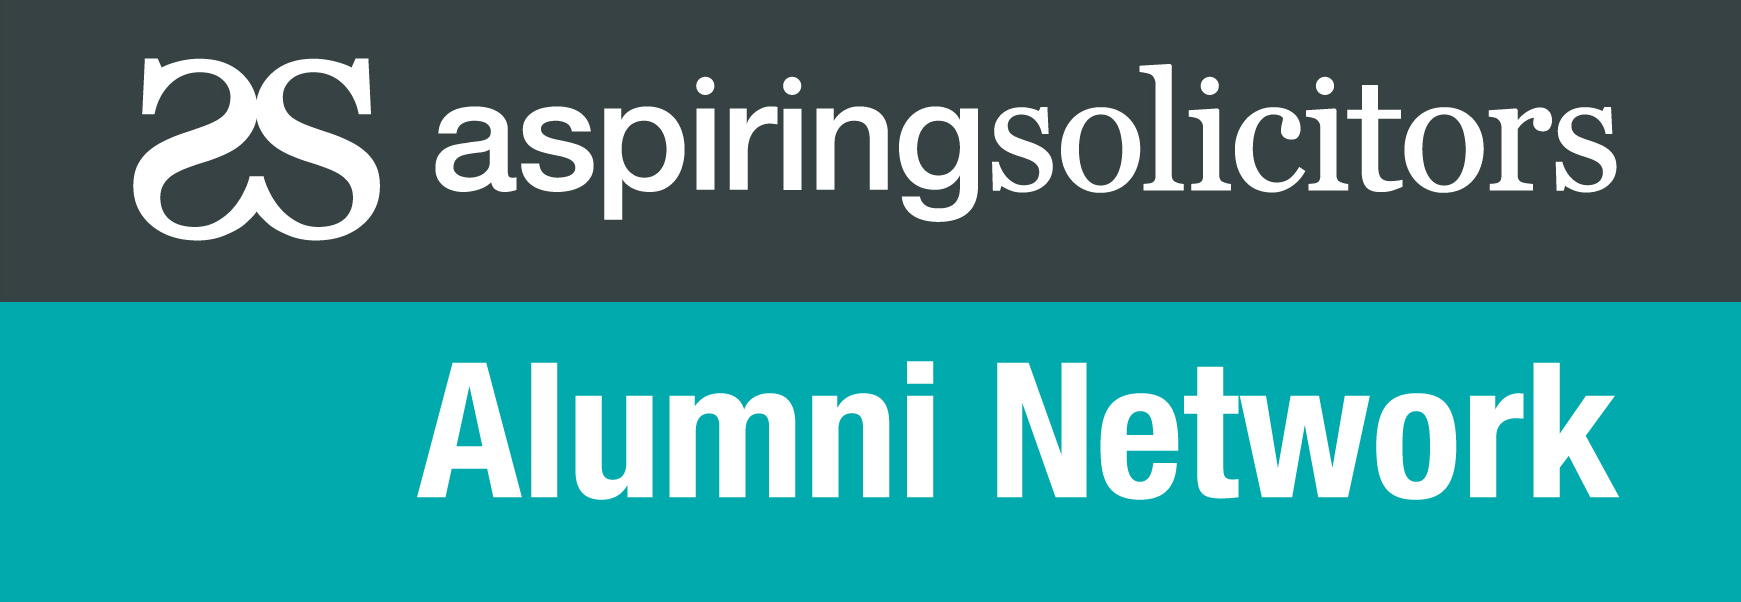 Aspiring Solicitors Alumni Network Launches 2018